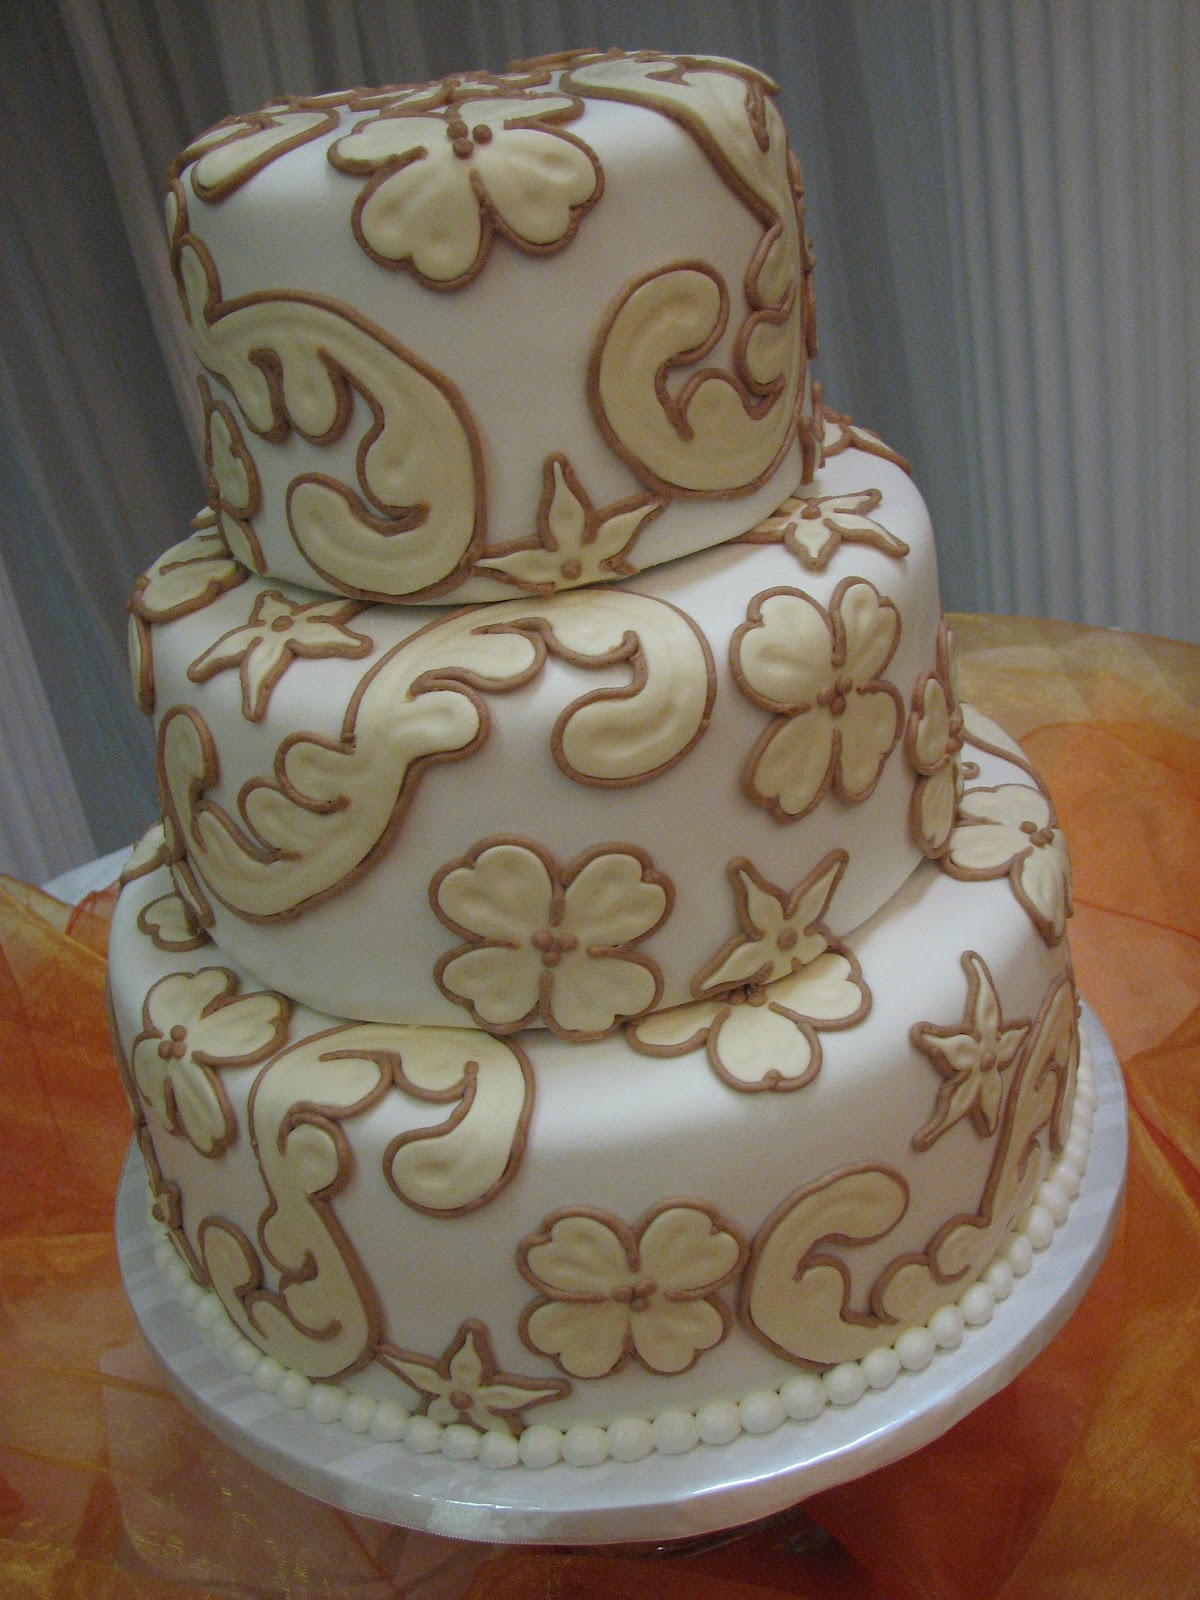 Decadent Designs Erica and Hershell s Wedding Cake